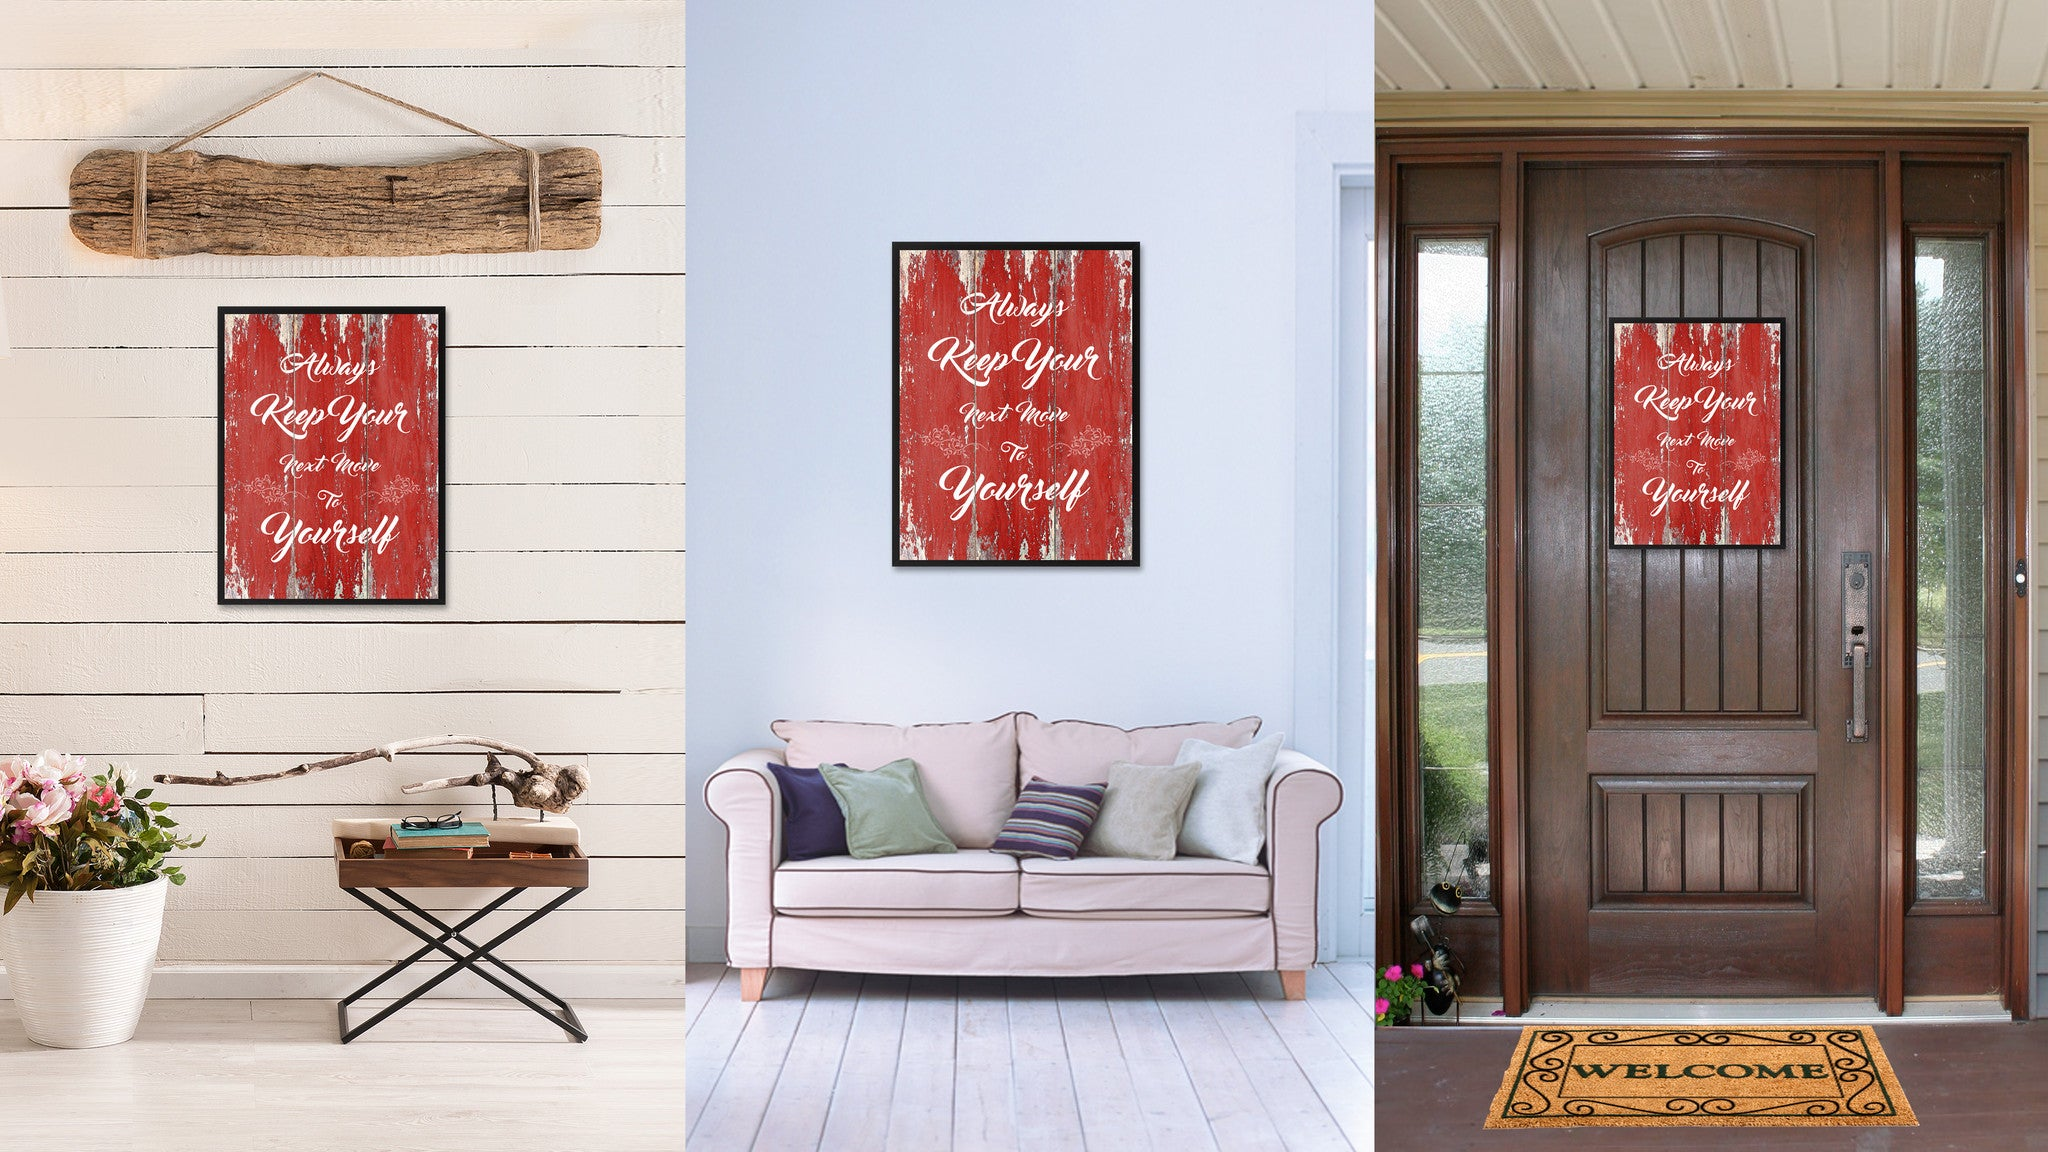 Always Keep Your Next Move to Yourself Motivation Quote Saying Gift Ideas Home Décor Wall Art